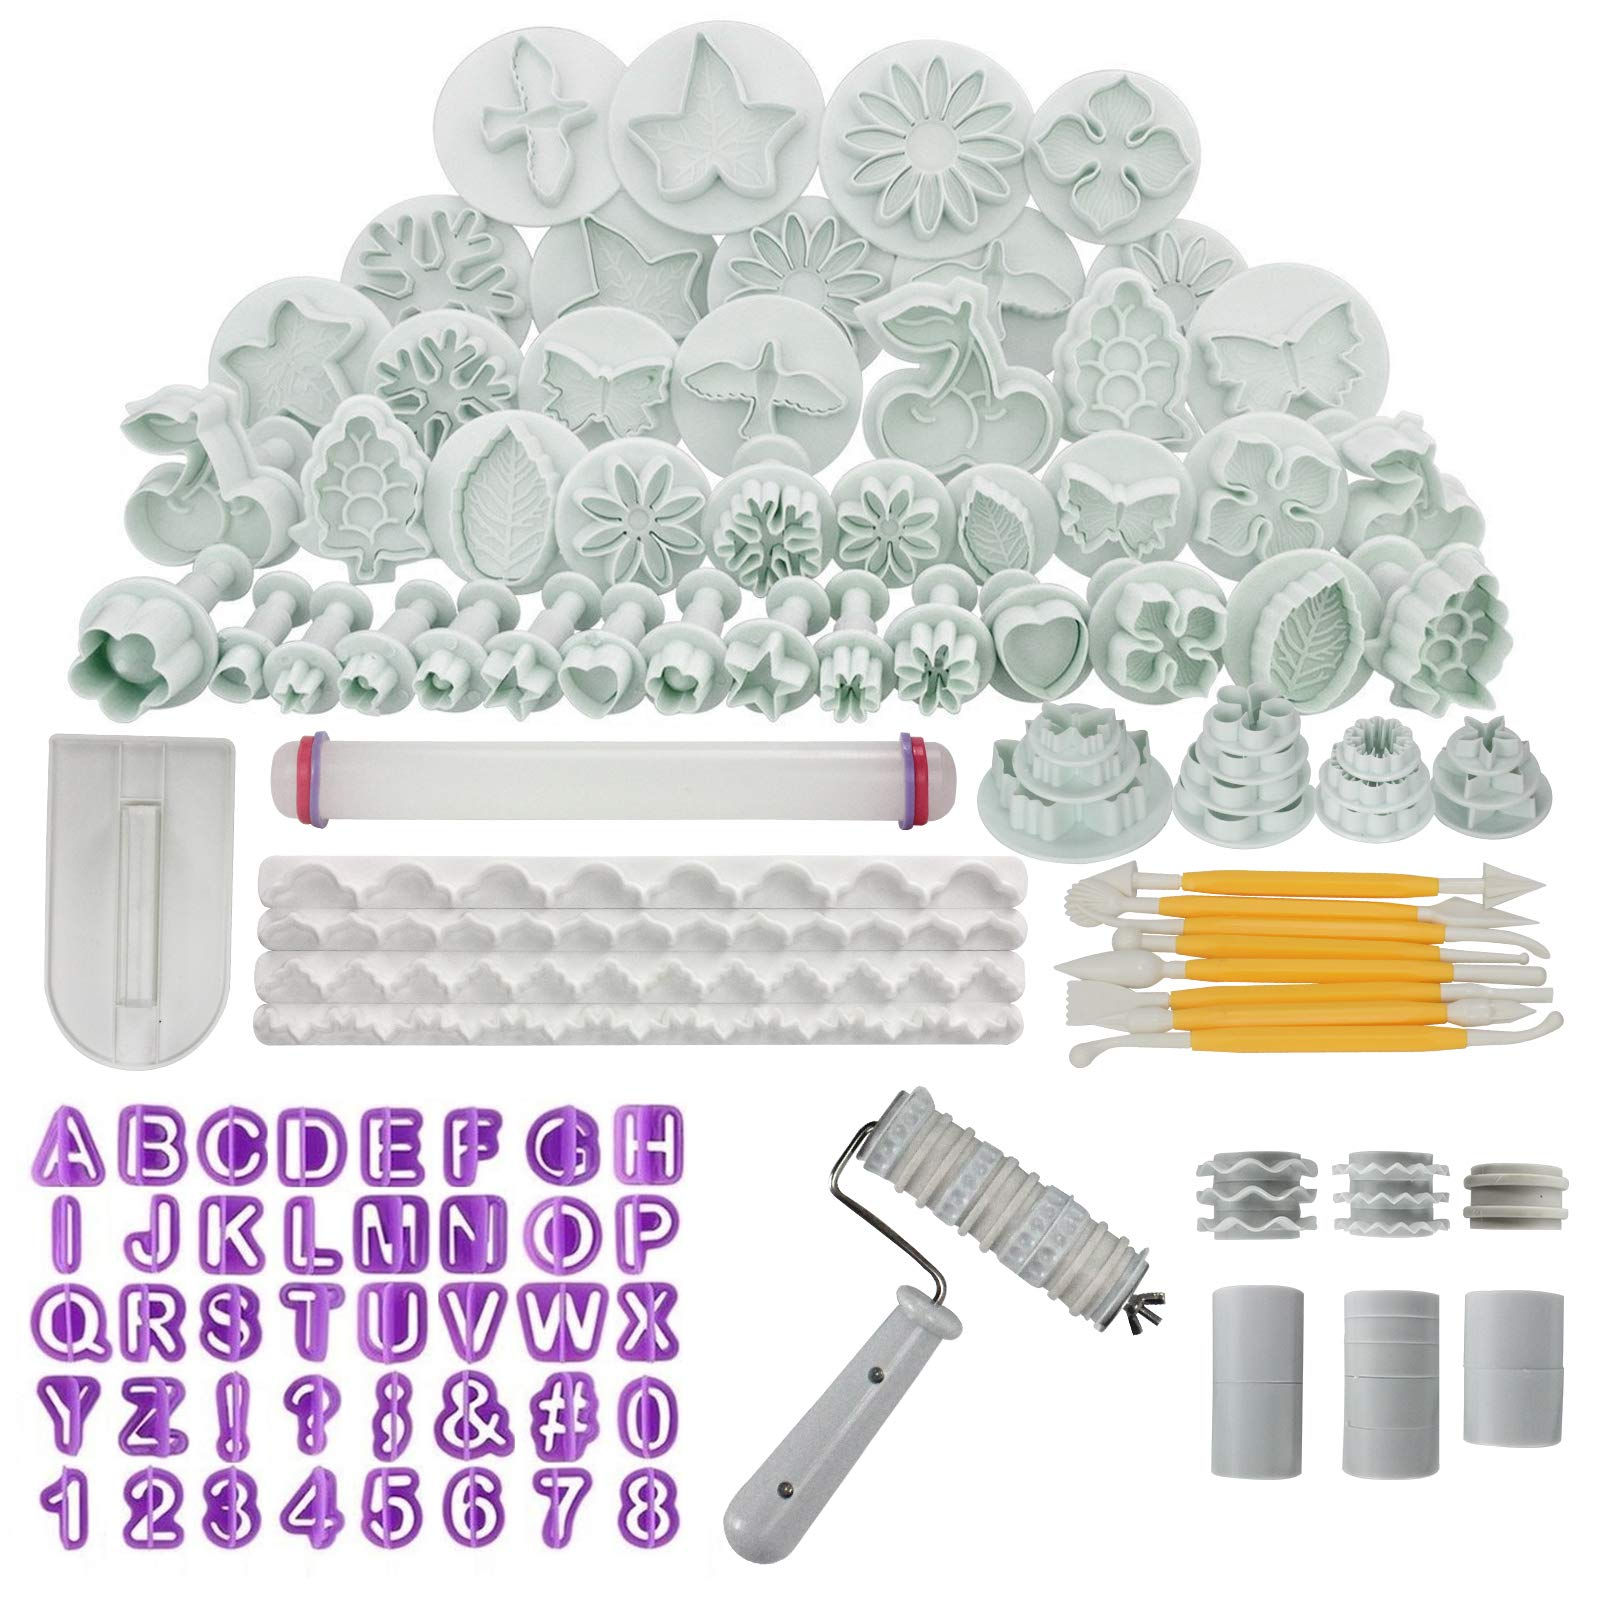 Funshowcase Fondant Cake Sugarcraft Decorating Kit Cookie Mould Icing Plunger Cutter Tool 102-piece Set